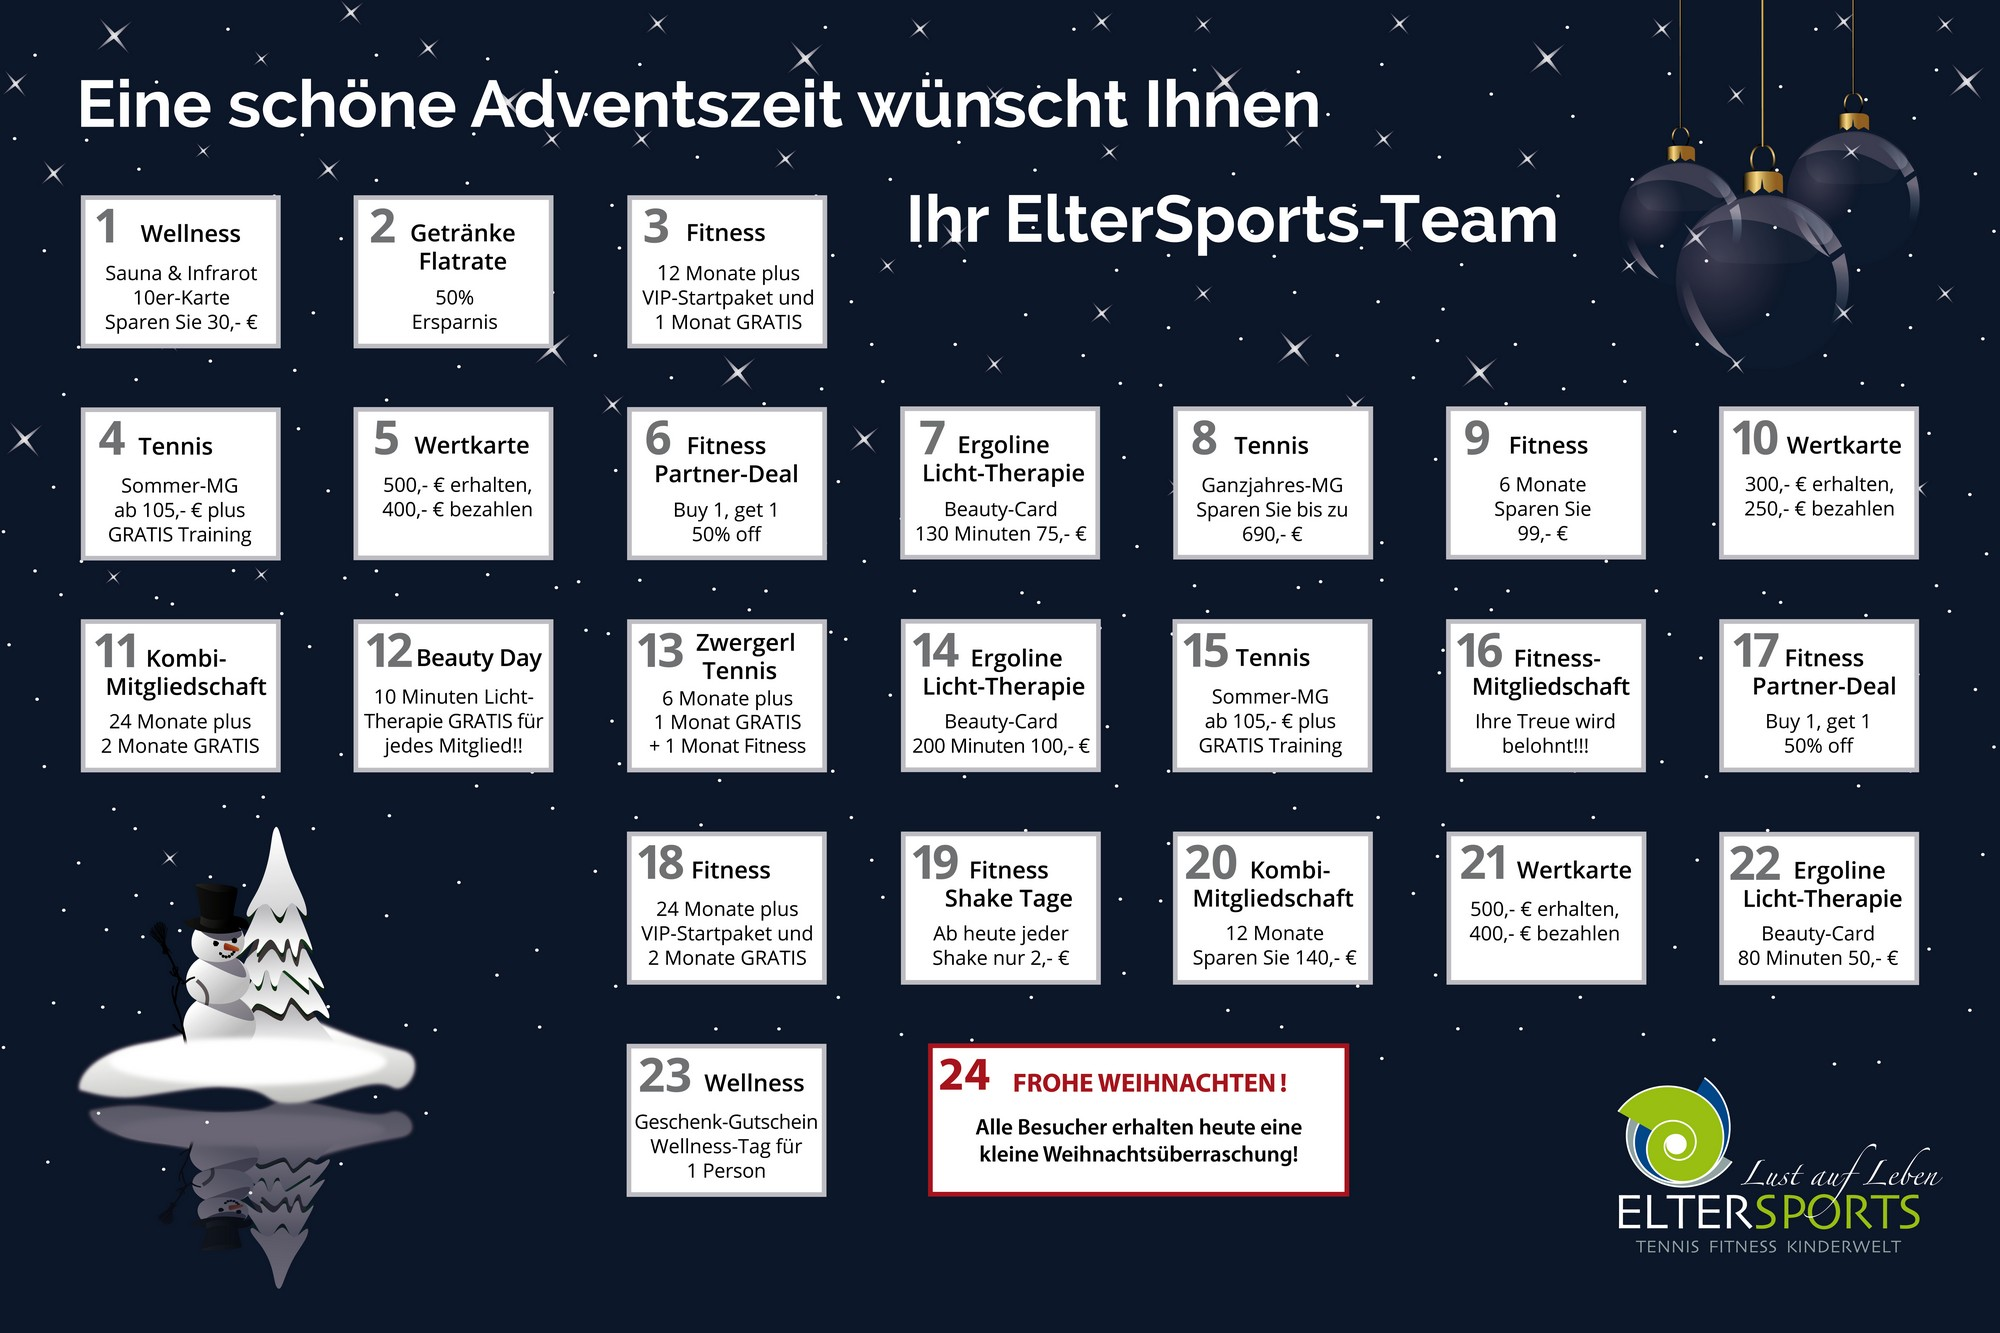 ElterSports Adventskalender 2017